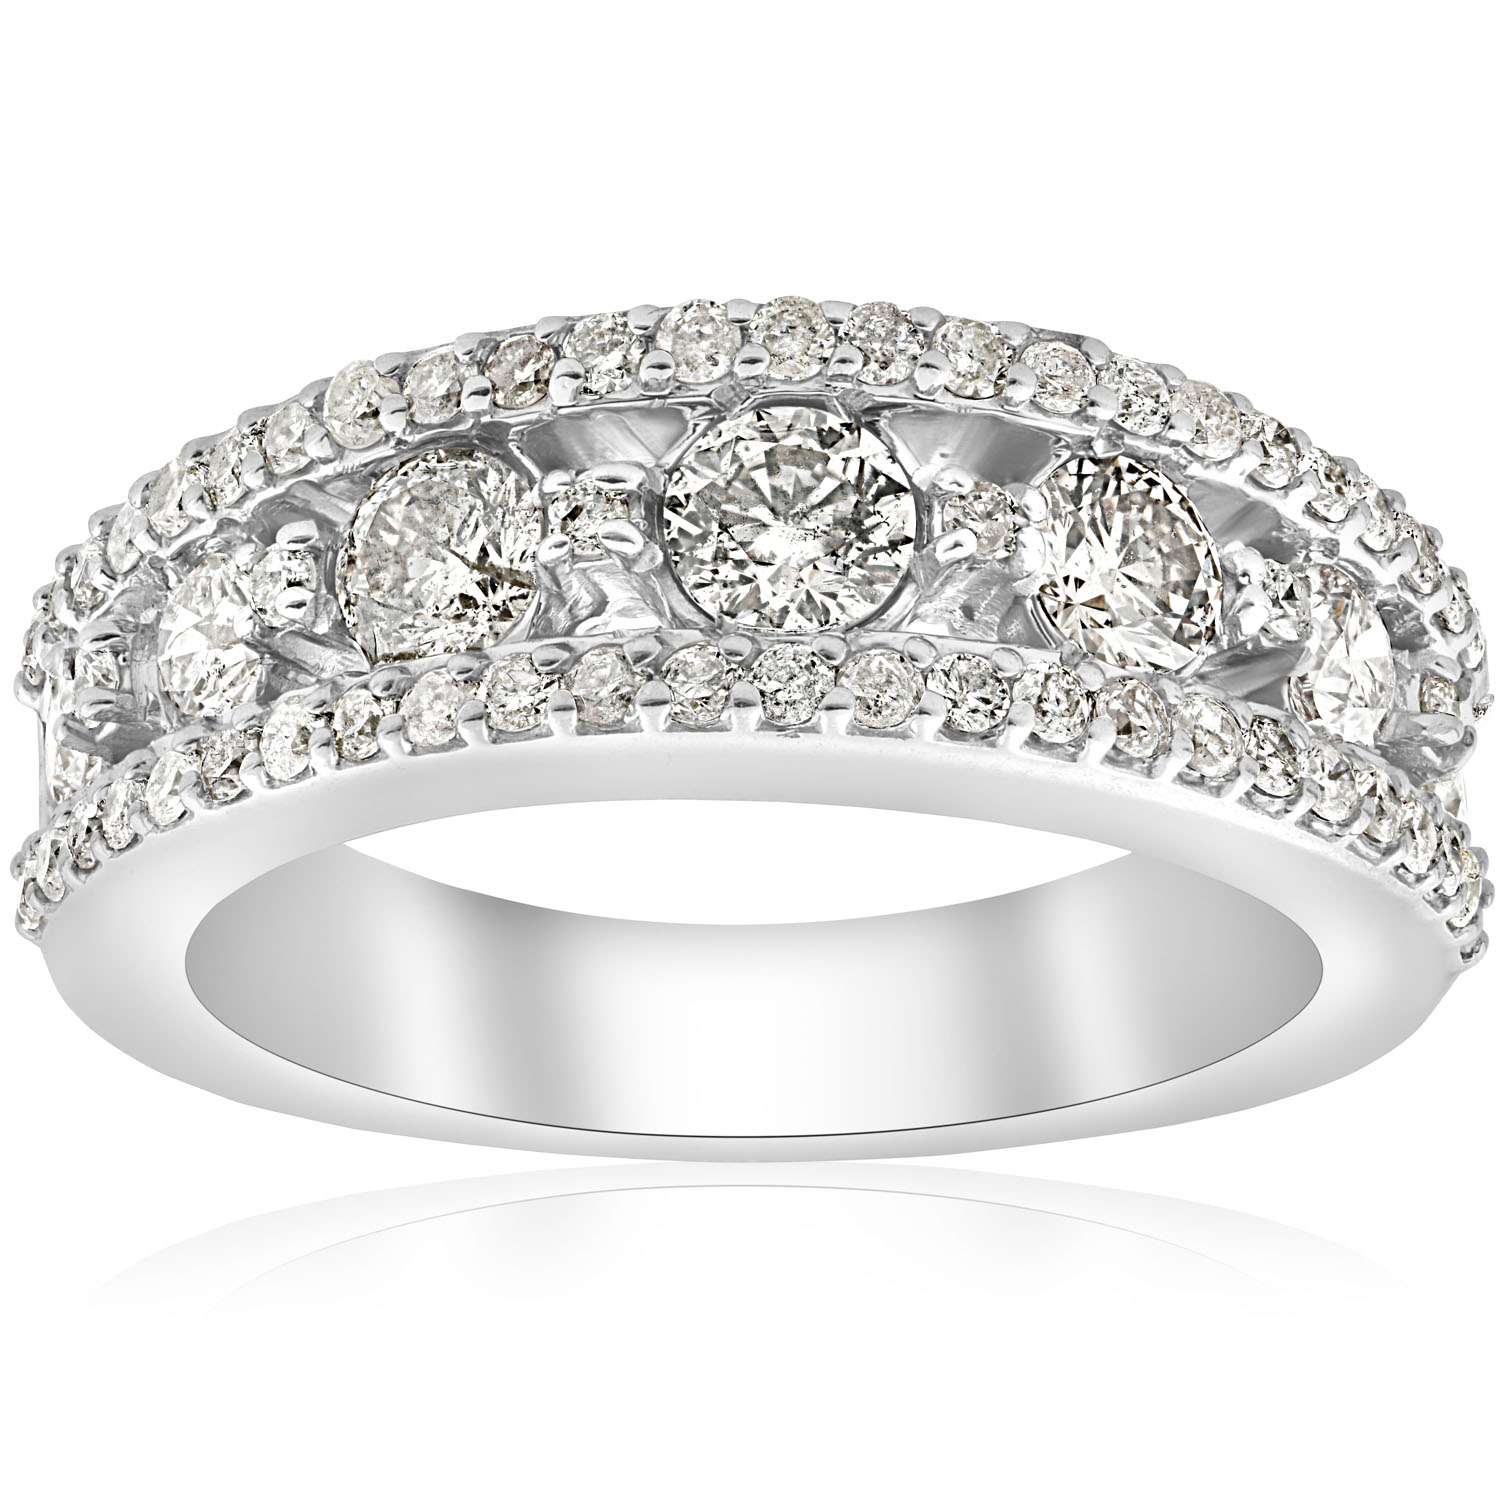 This is a picture of Details about 4445.445mm Wide 445 445/45ct Diamond Wedding Ring 4454k White Gold Womens Solid Heavy Band